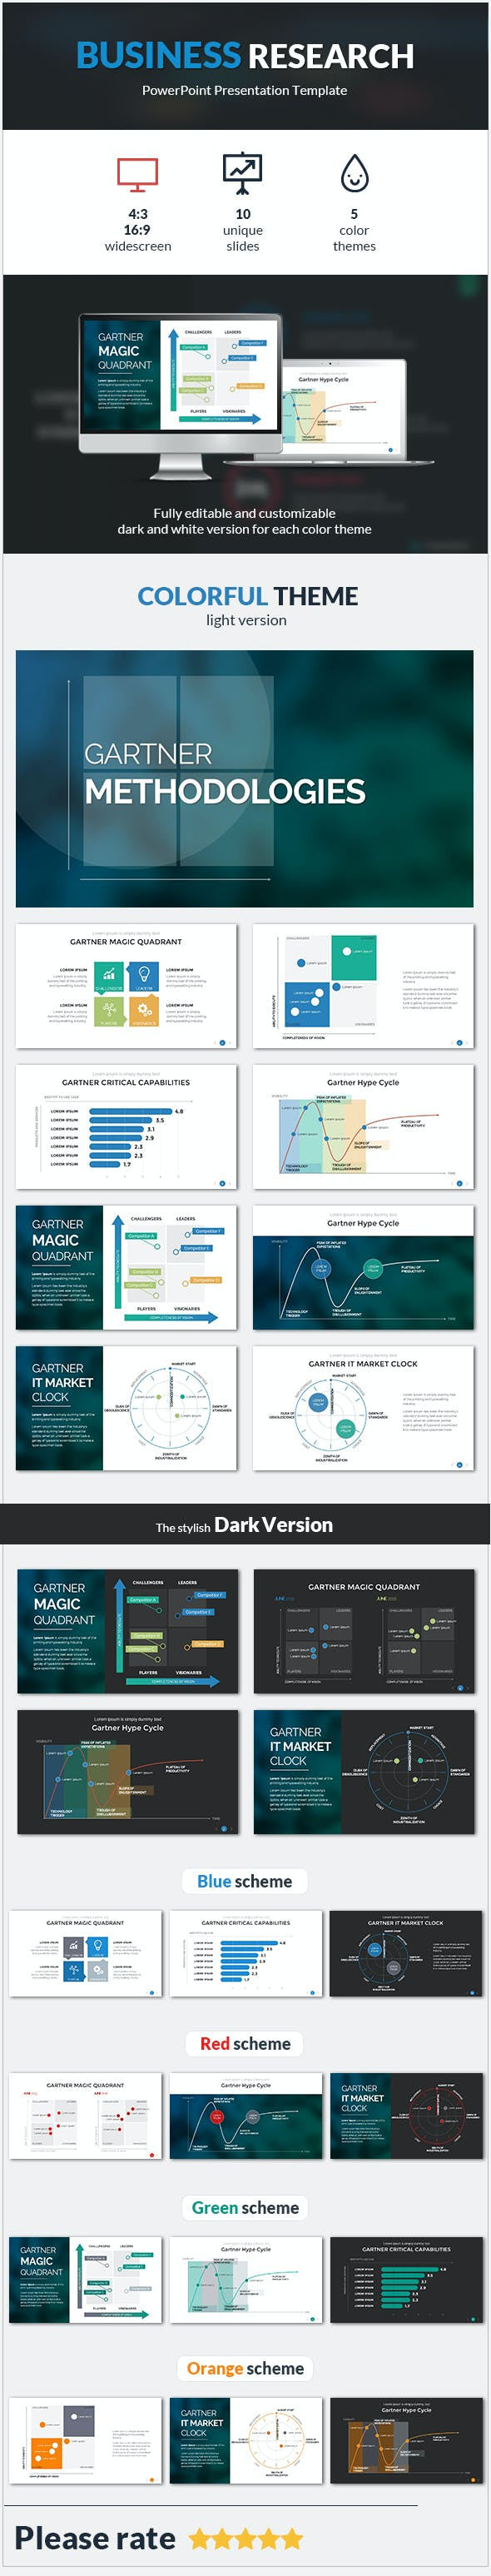 business research powerpoint template by sananik graphicriver